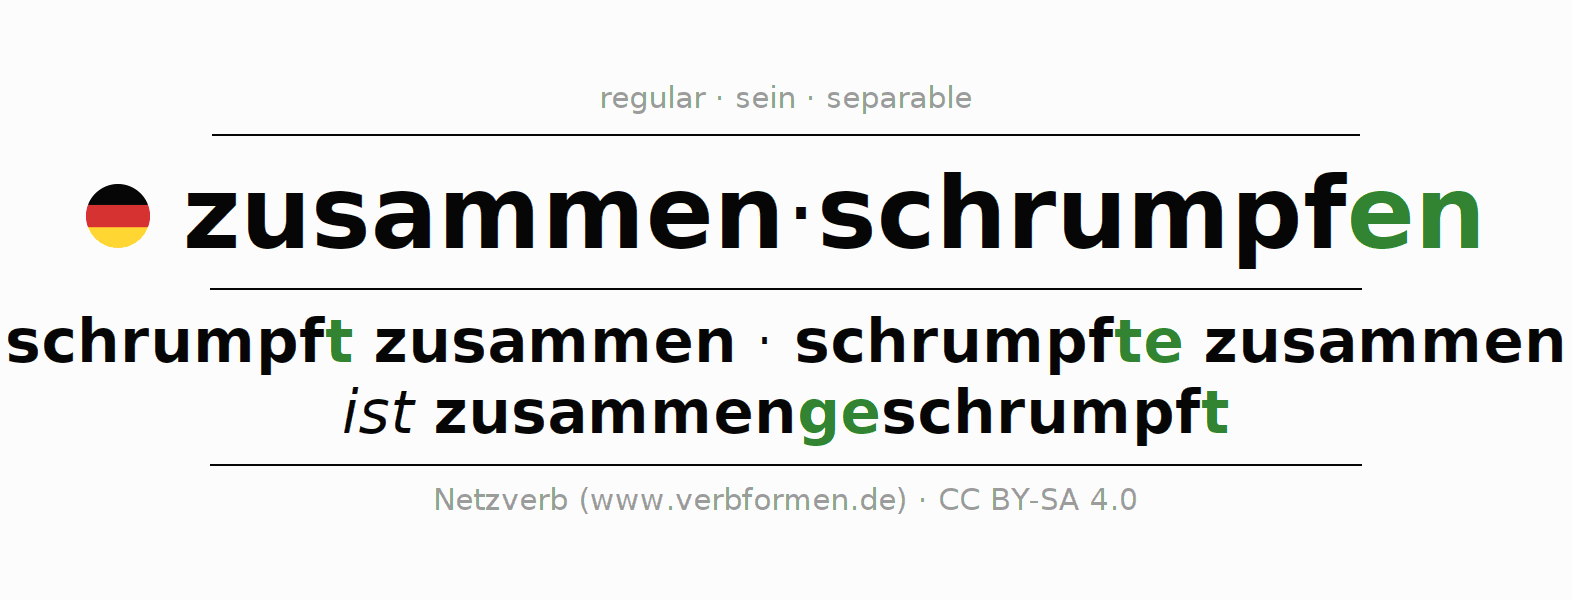 Entire conjugation of the German verb zusammenschrumpfen. All tenses are clearly represented in a table.